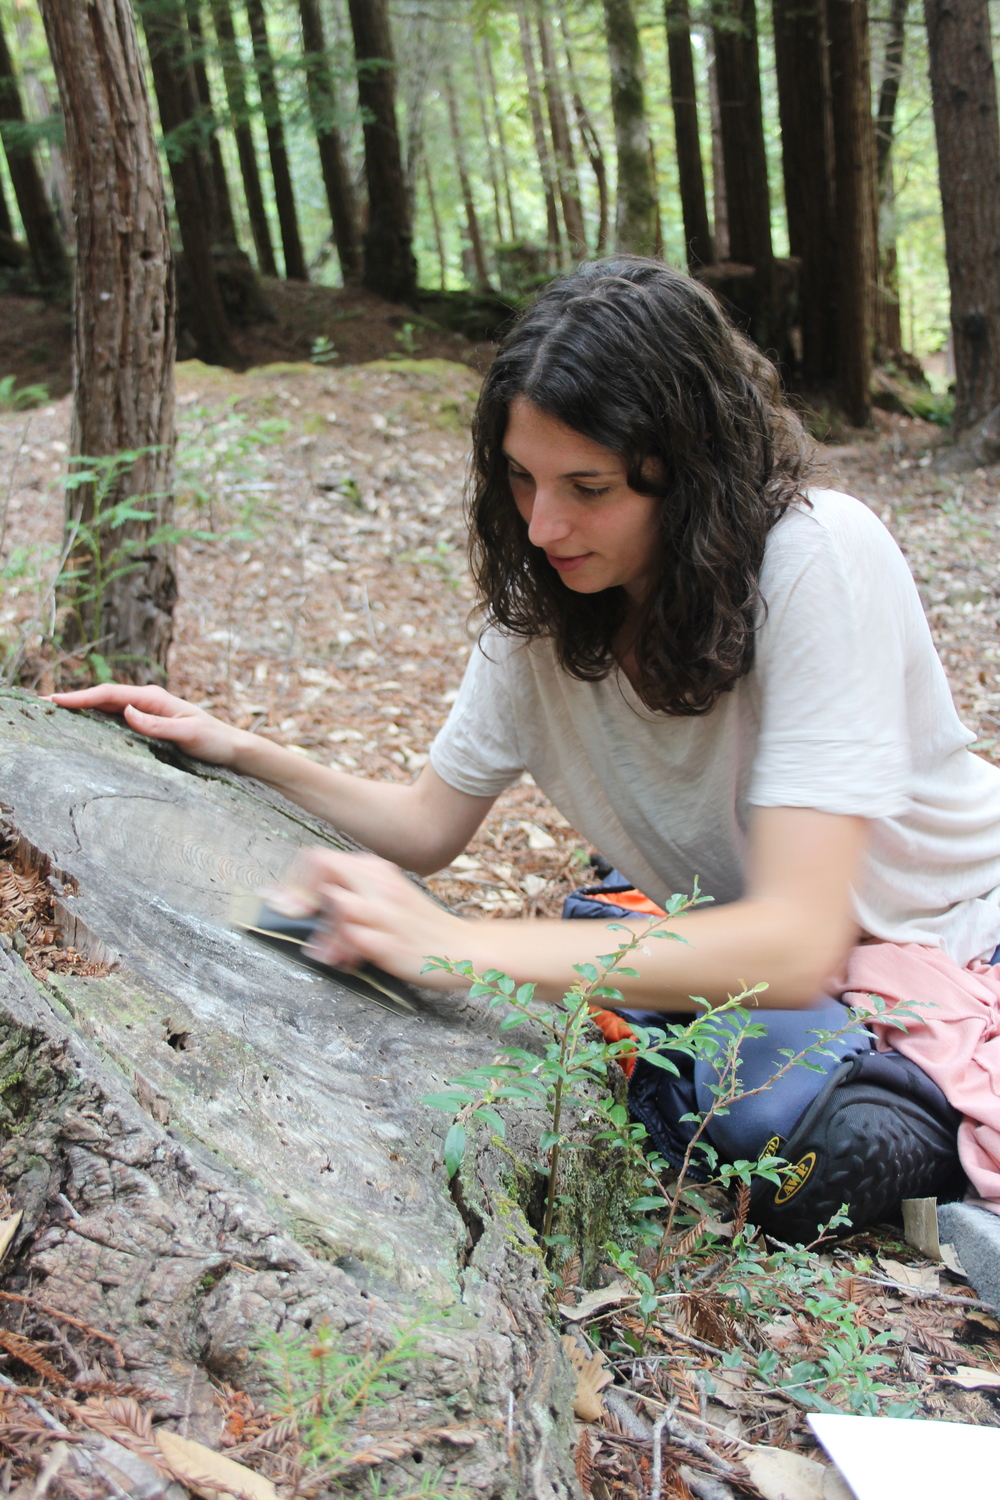 Claudia Bicen prepares surfaces for her portraits in the woods.